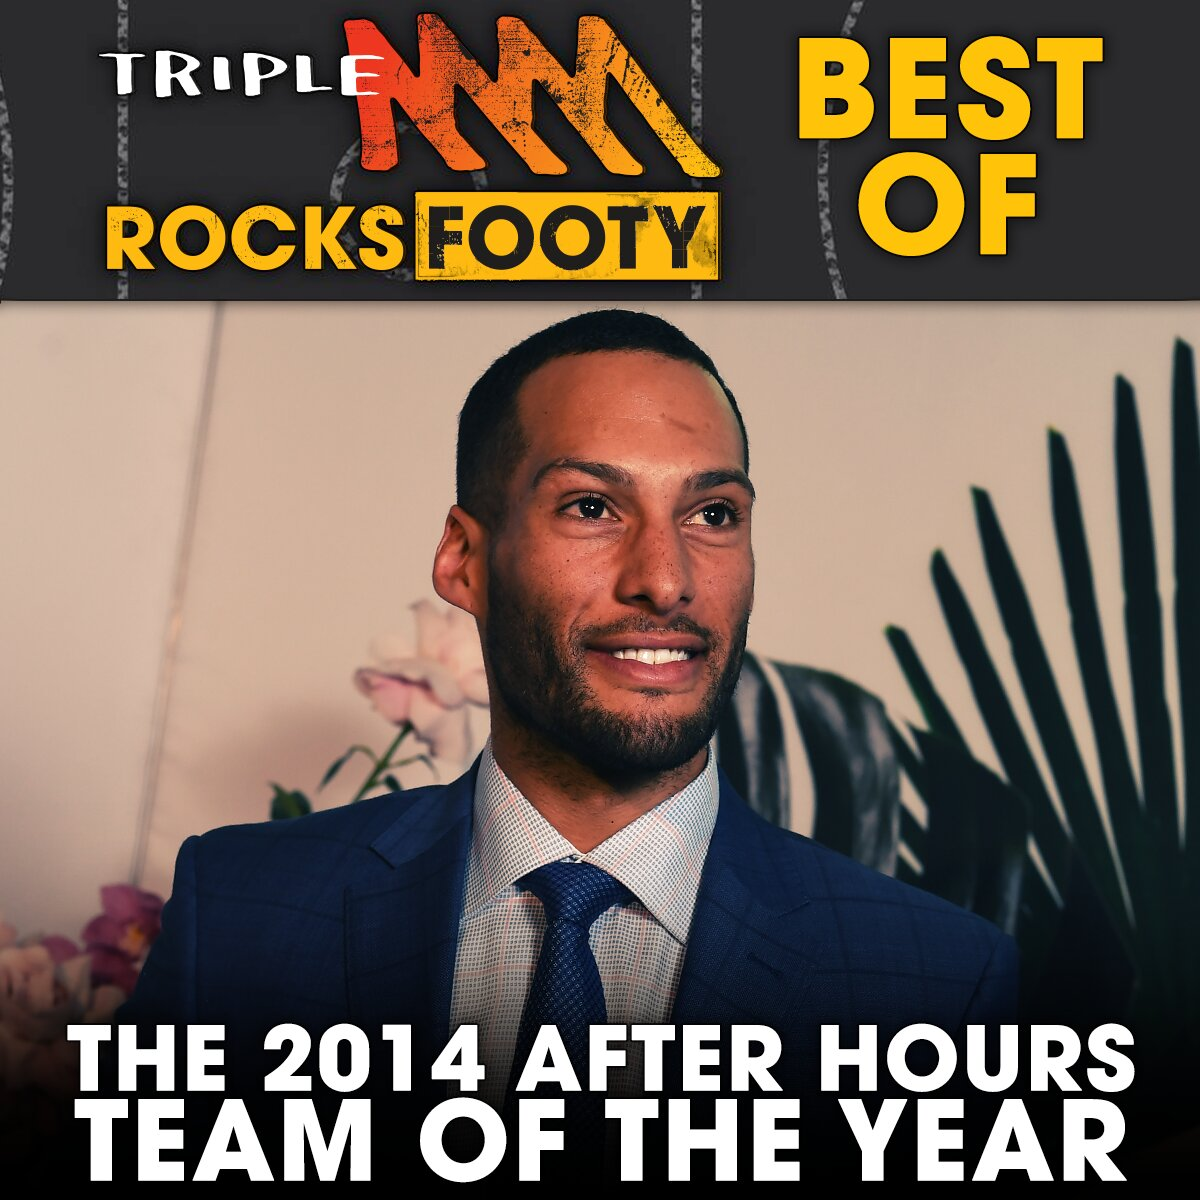 Triple M's 2014 After Hours Operators Team Of The Year